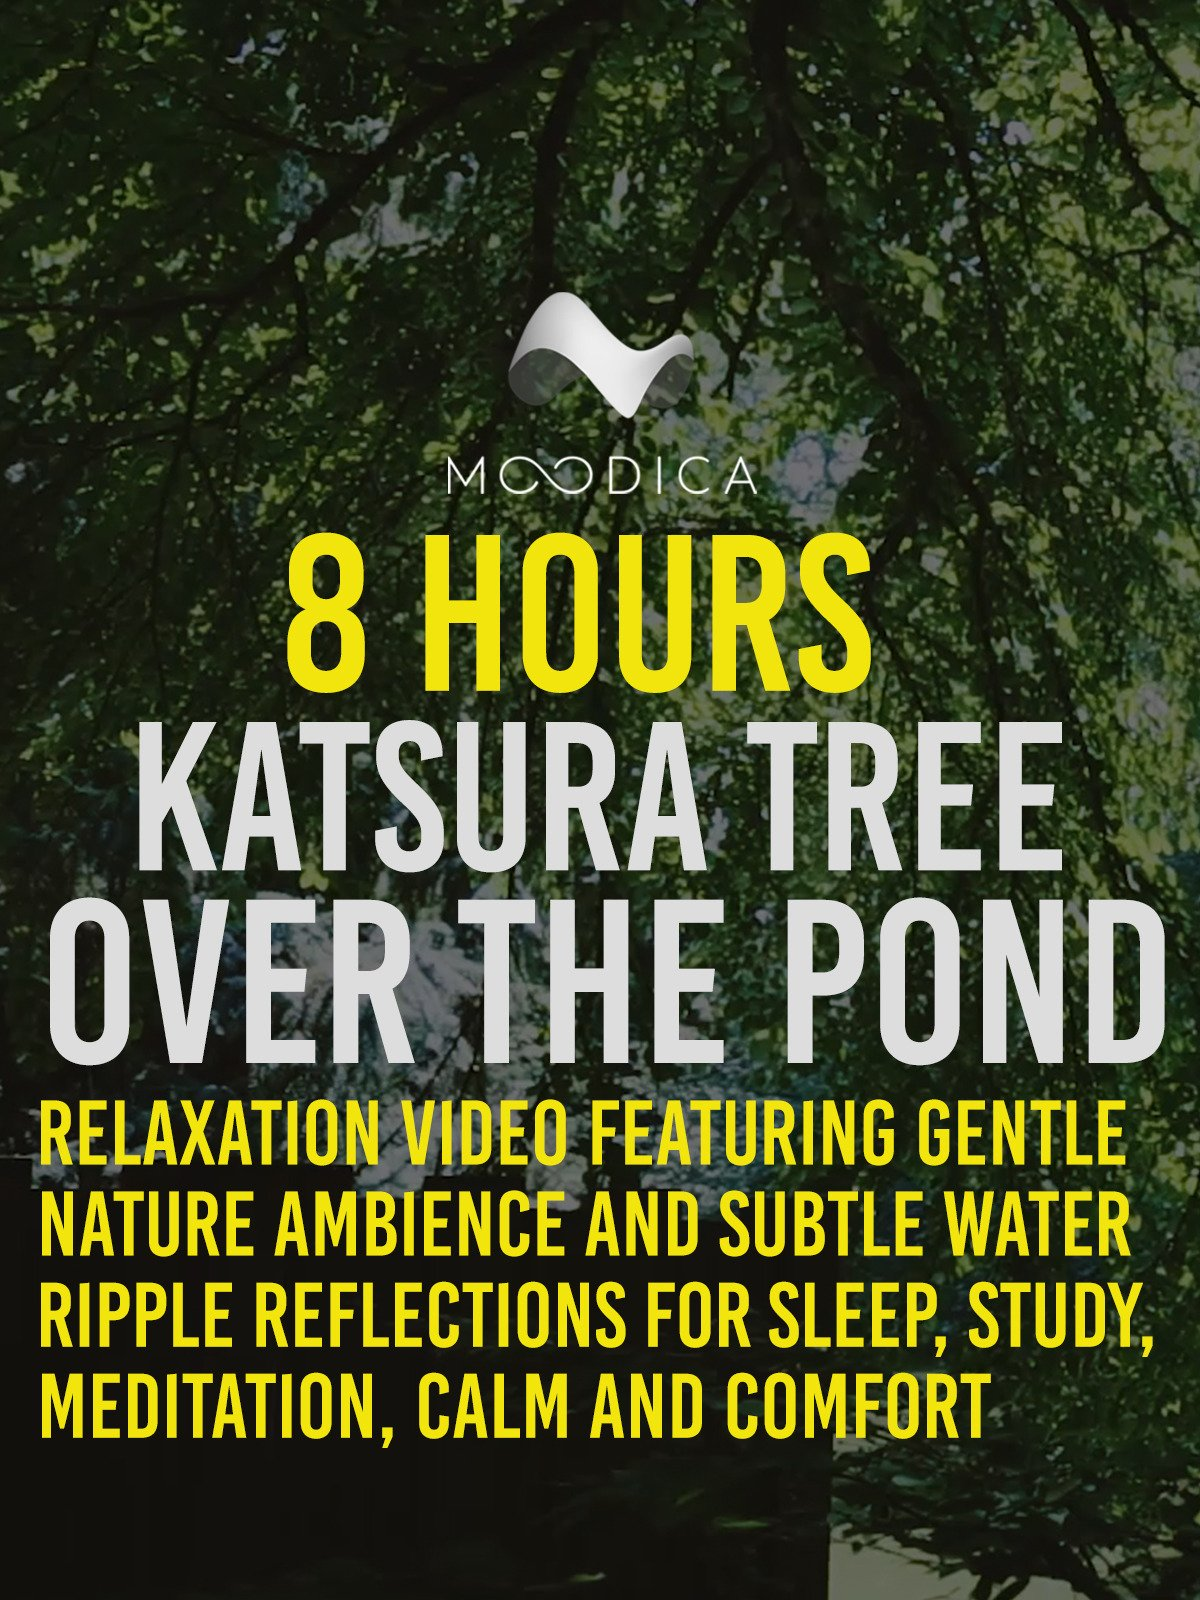 8 Hours: Katsura Tree Over The Pond: Relaxation Video Featuring Gentle Nature Ambience and Subtle Water Ripple Reflections For Sleep, Study, Meditation, Calm and Comfort